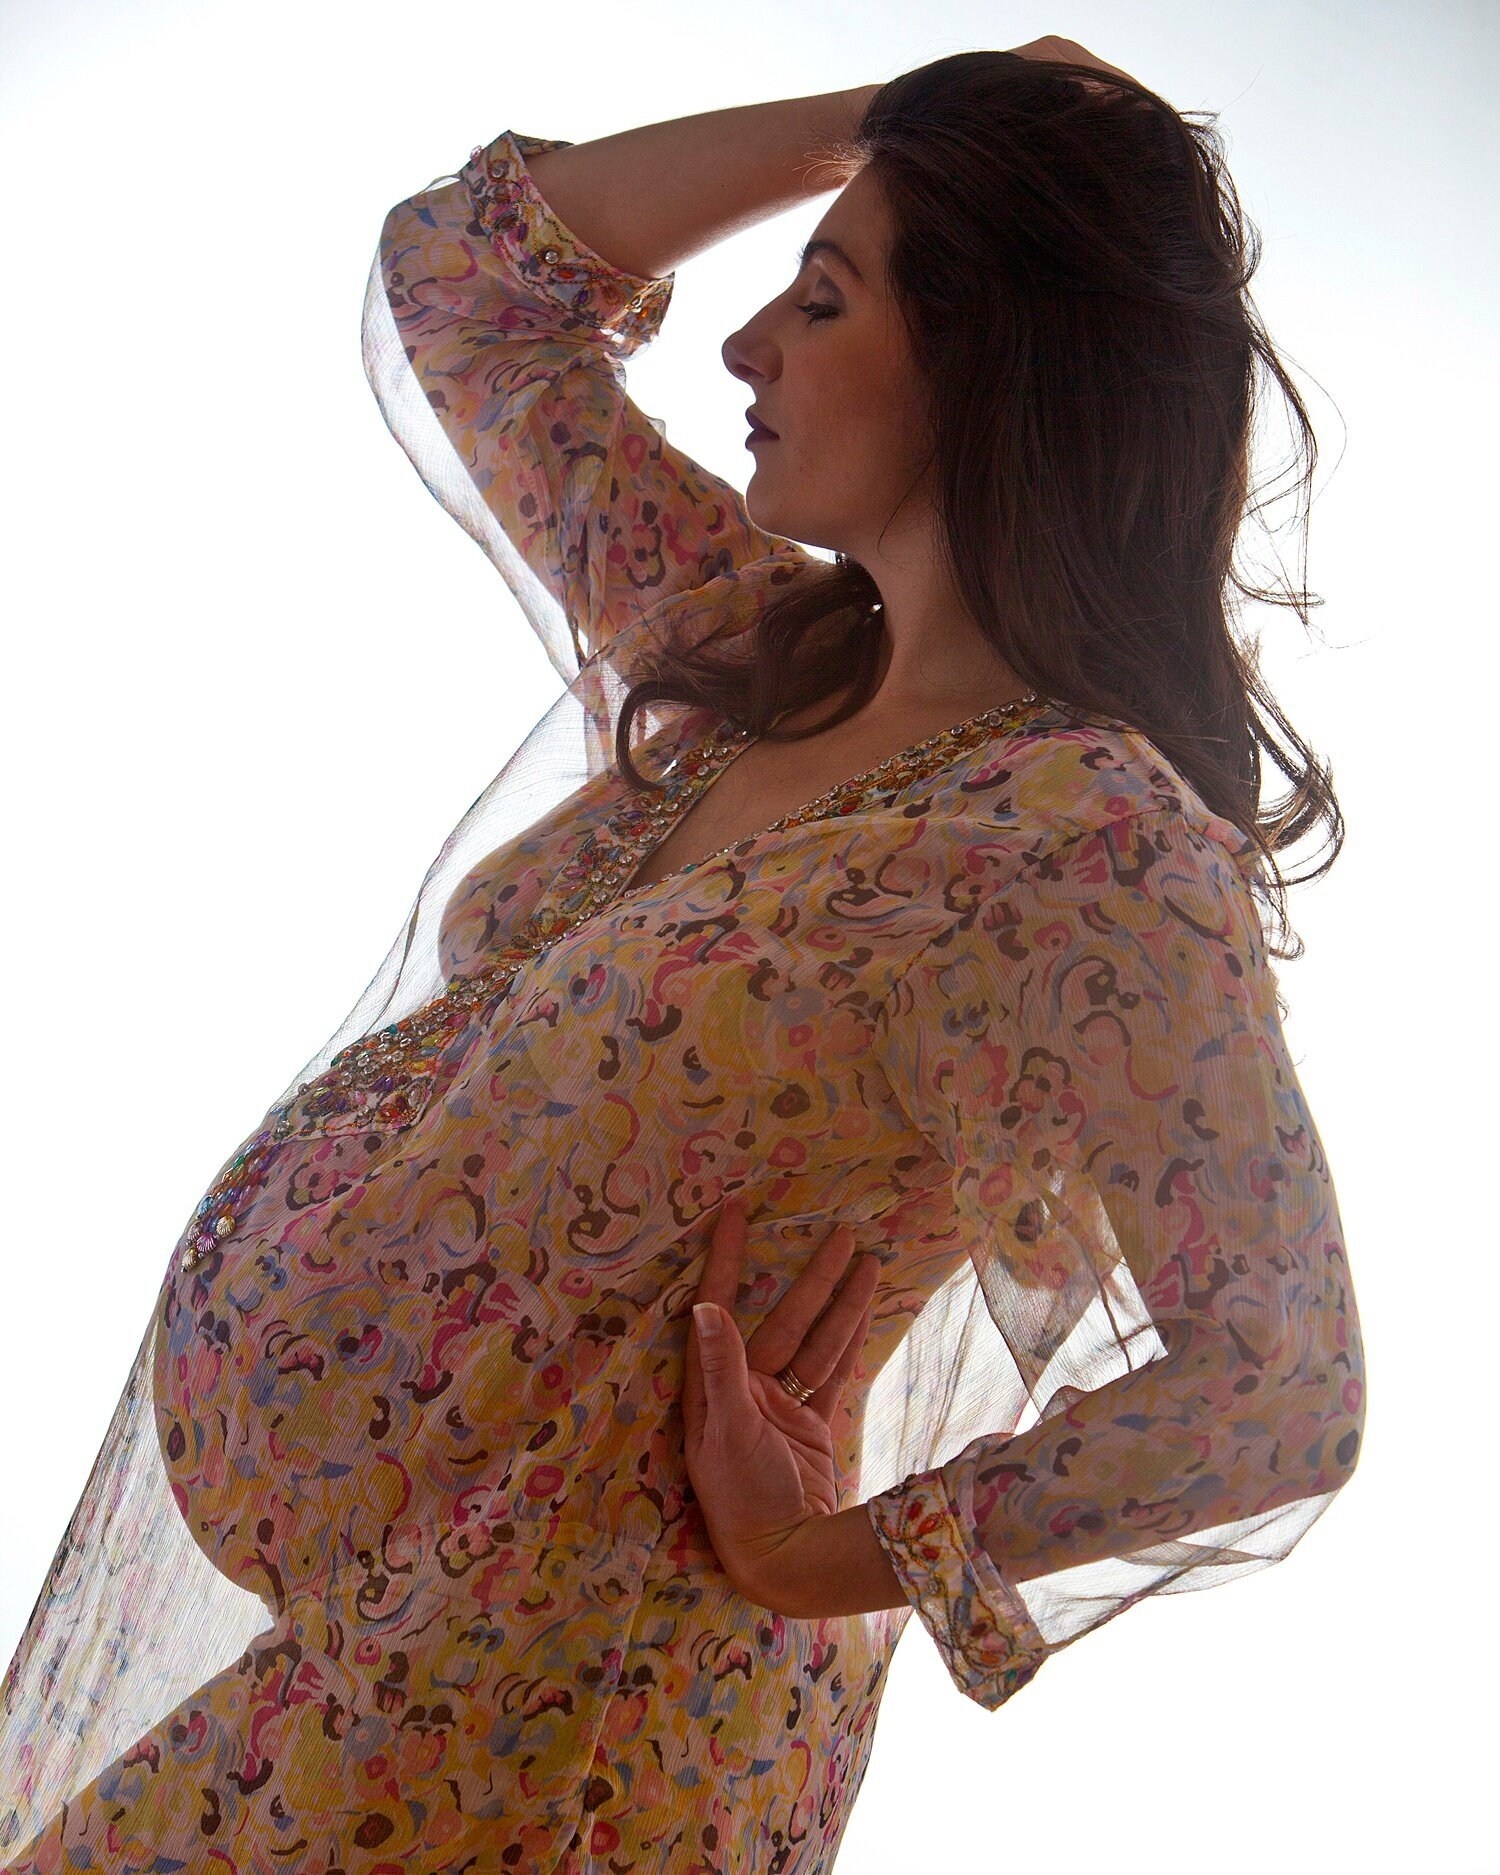 brooklyn_maternity_photographer_20_008_WEB